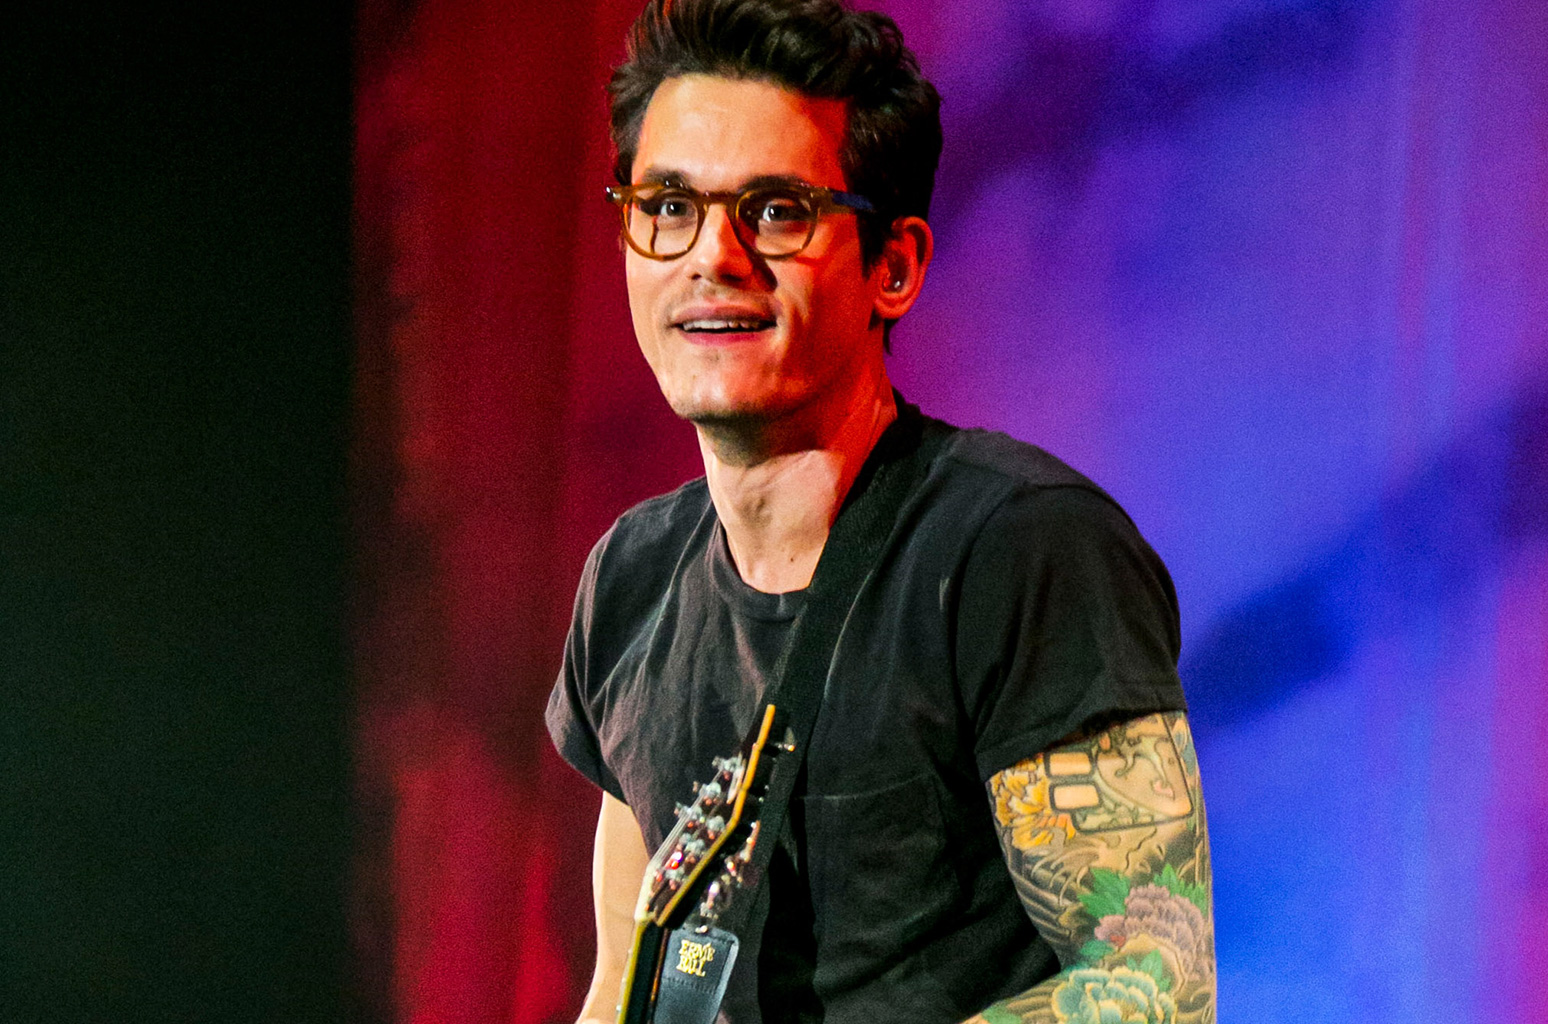 John Mayer, girlfriend, dating, past affairs, Katy Perry, net worth, wiki